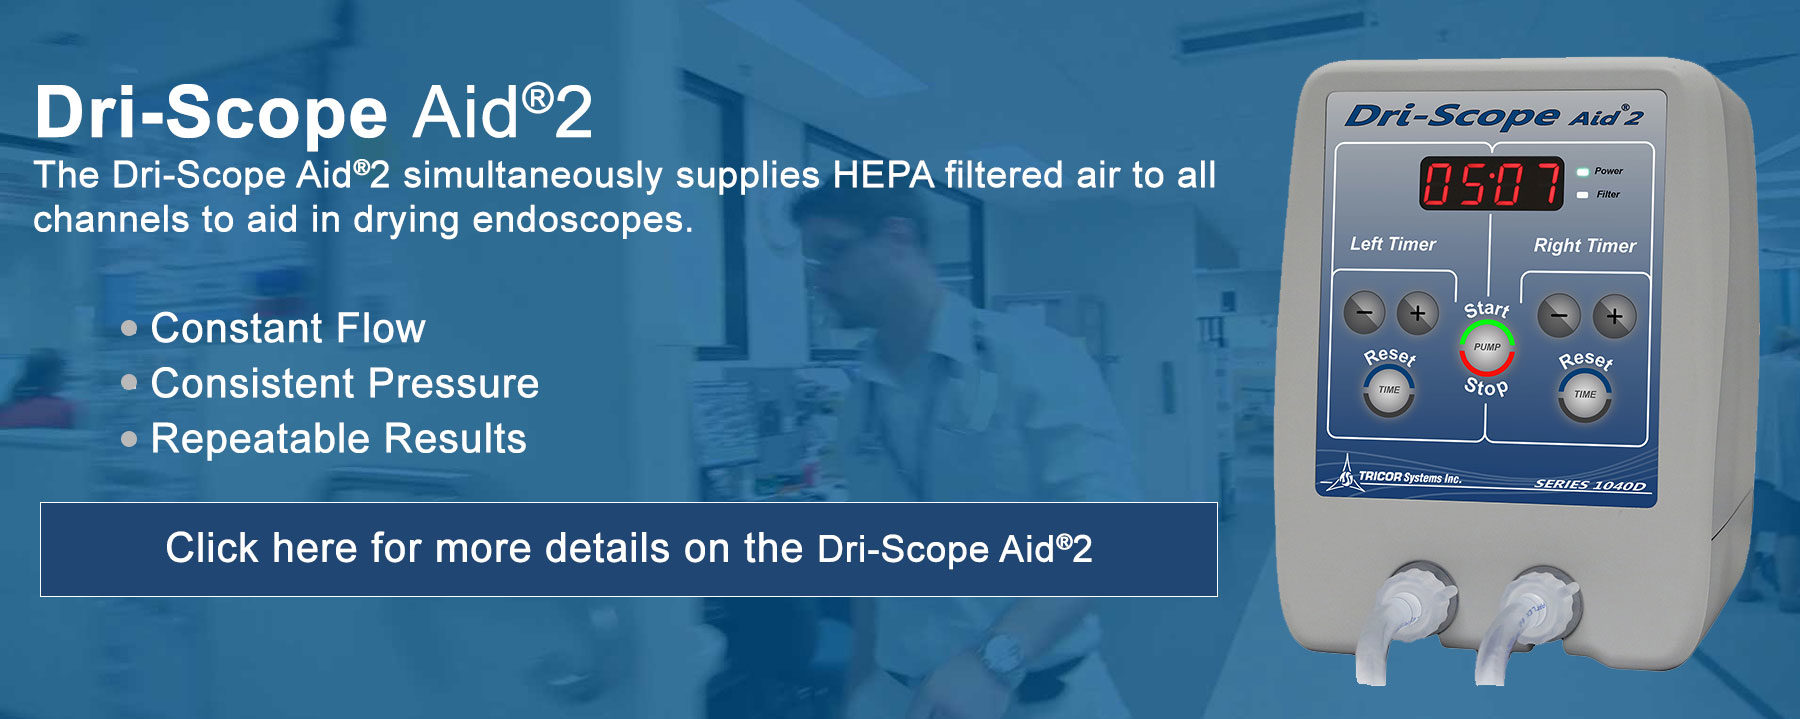 Dri-Scope Aid 2